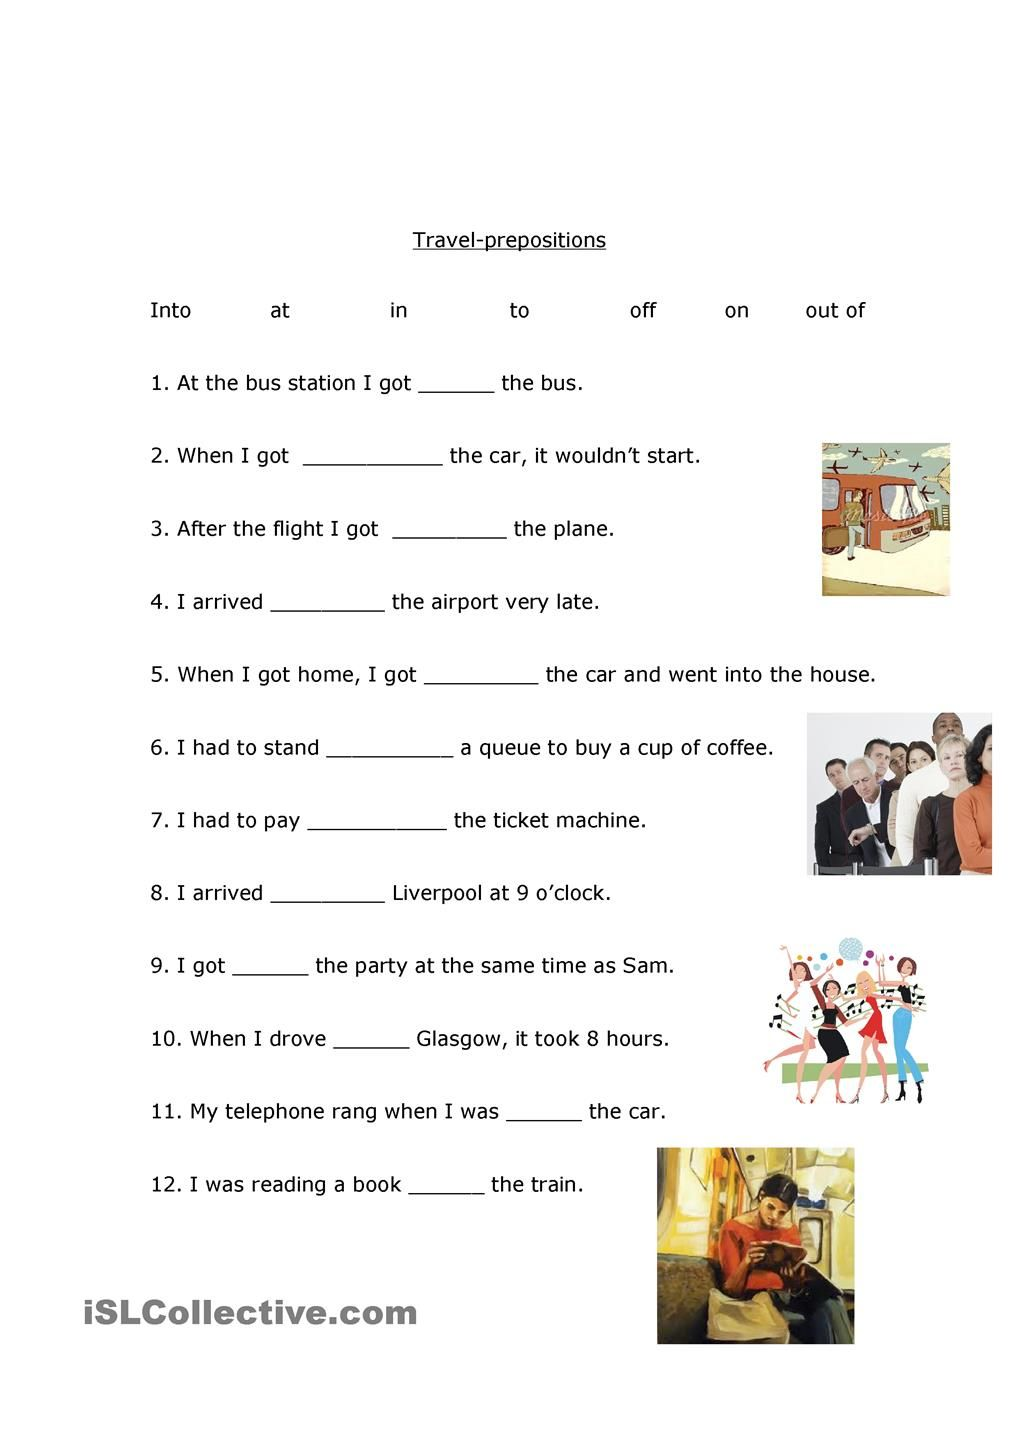 medium resolution of Travel prepositions   Preposition worksheets